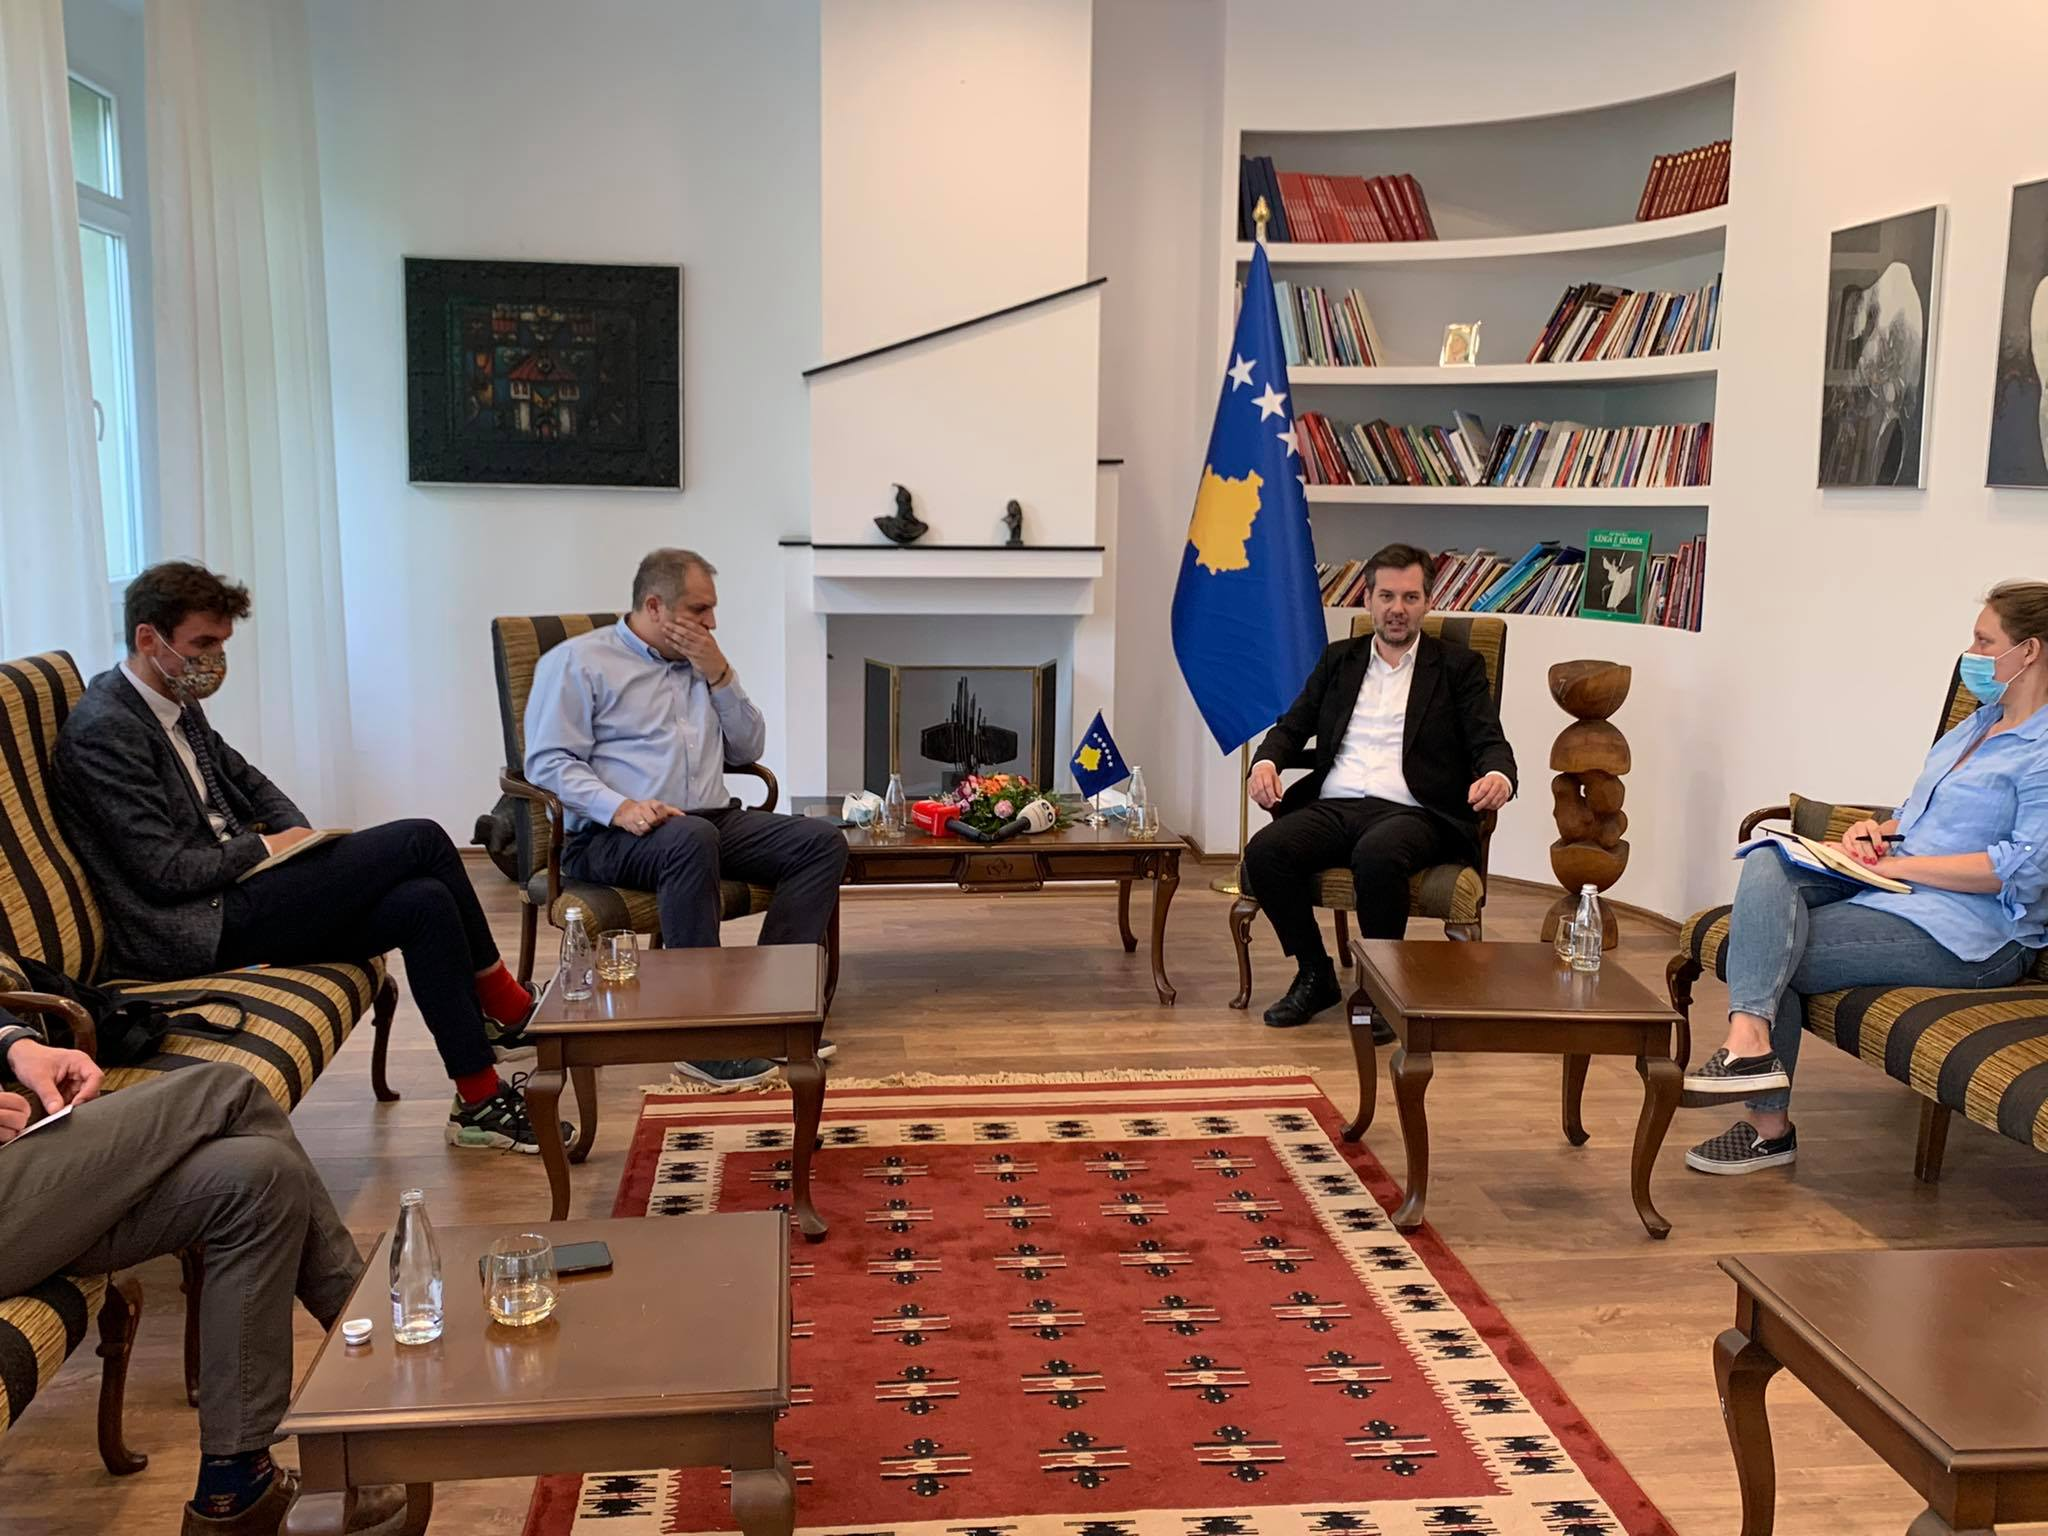 MCYS and the municipality of Prishtina agree to fight for the protection of the cultural heritage